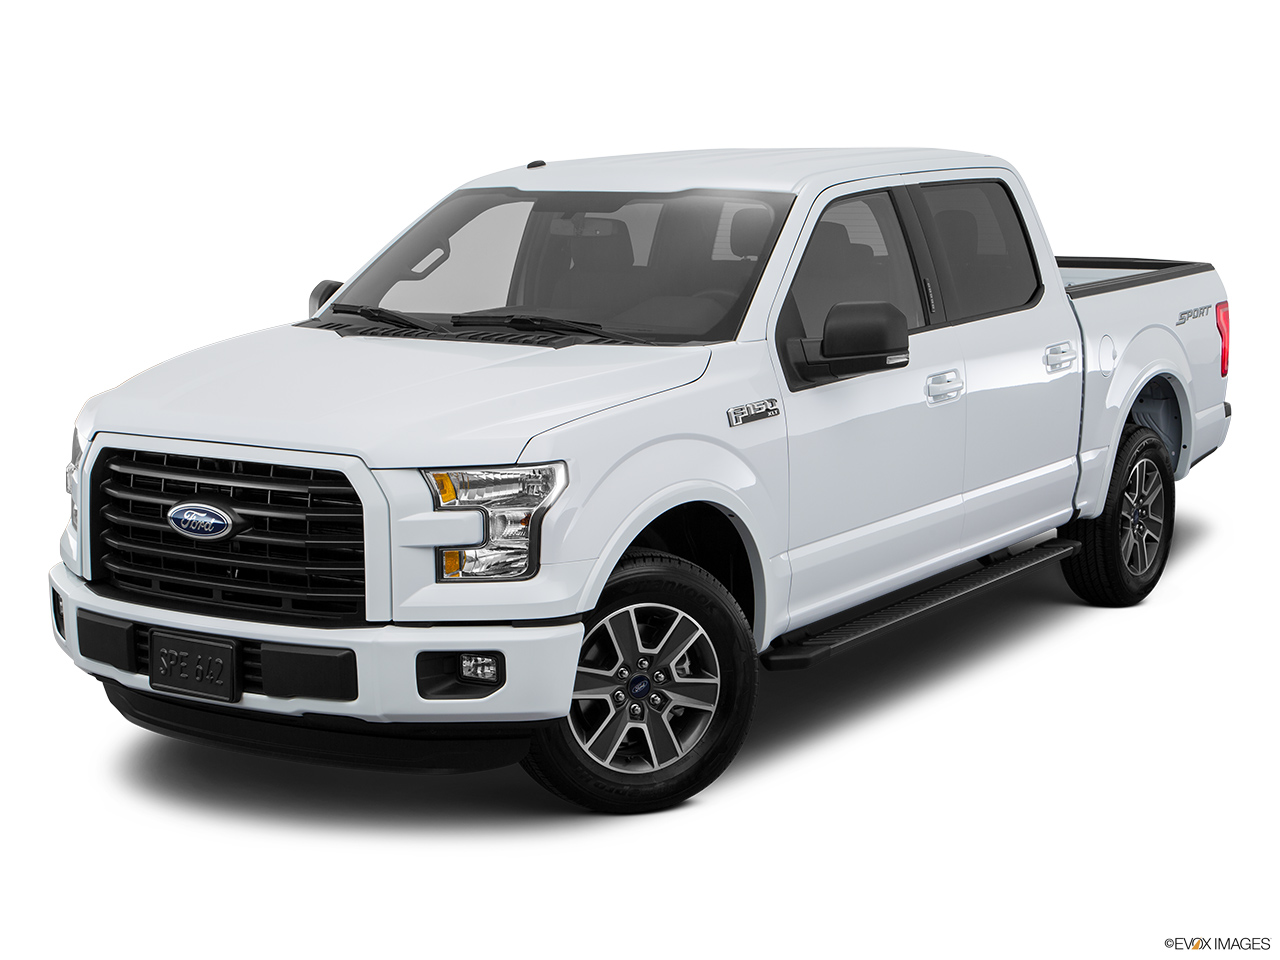 Image Result For Ford Expedition Price In Bahrain